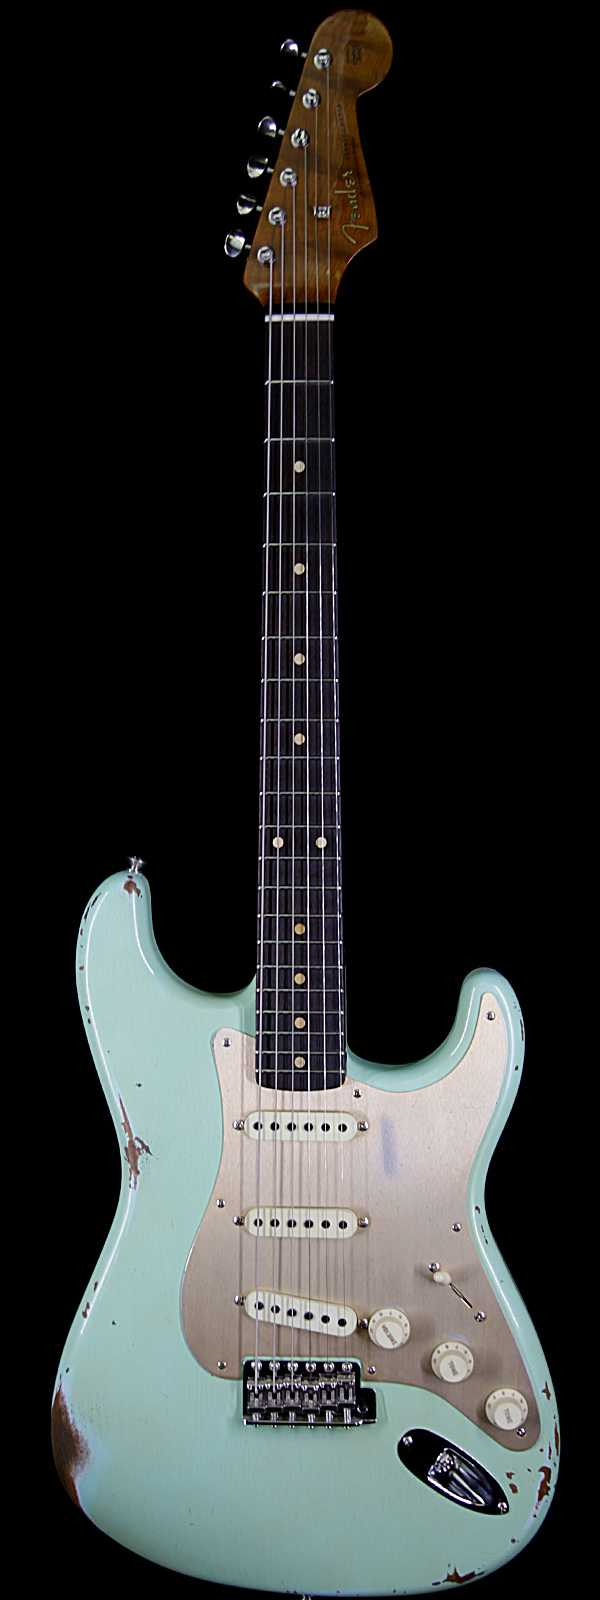 Fender Custom Shop 30th Anniversary 1960 Stratocaster Relic Roasted  Birdseye Neck Rosewood Board Aged Surf Green